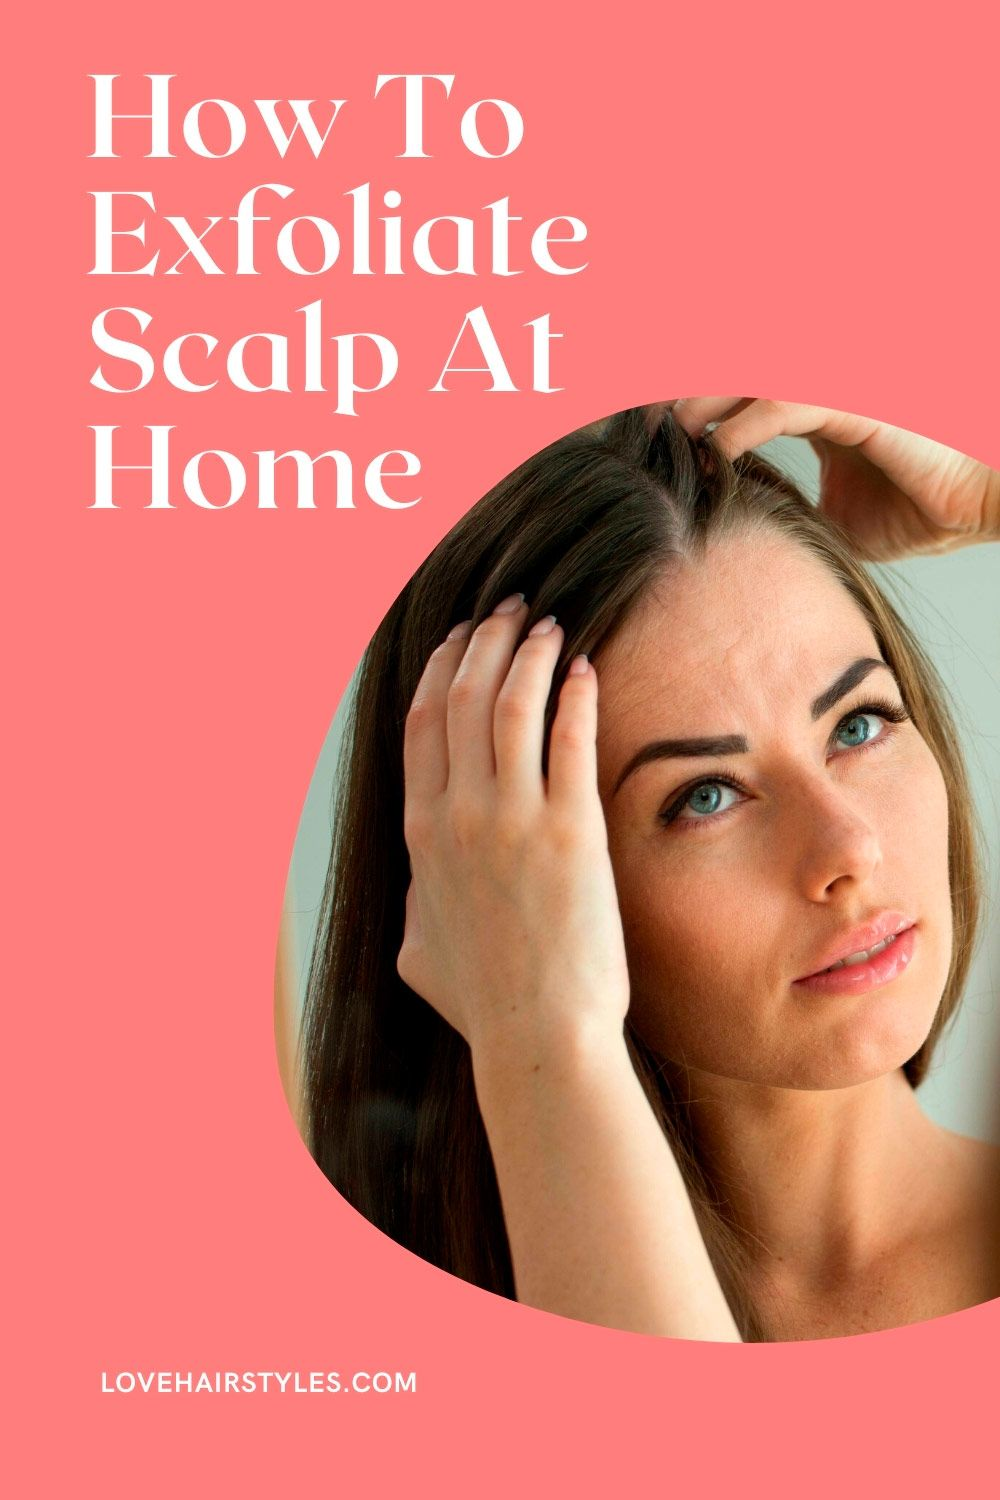 How To Exfoliate Scalp At Home Without Damaging Hair: Recipes